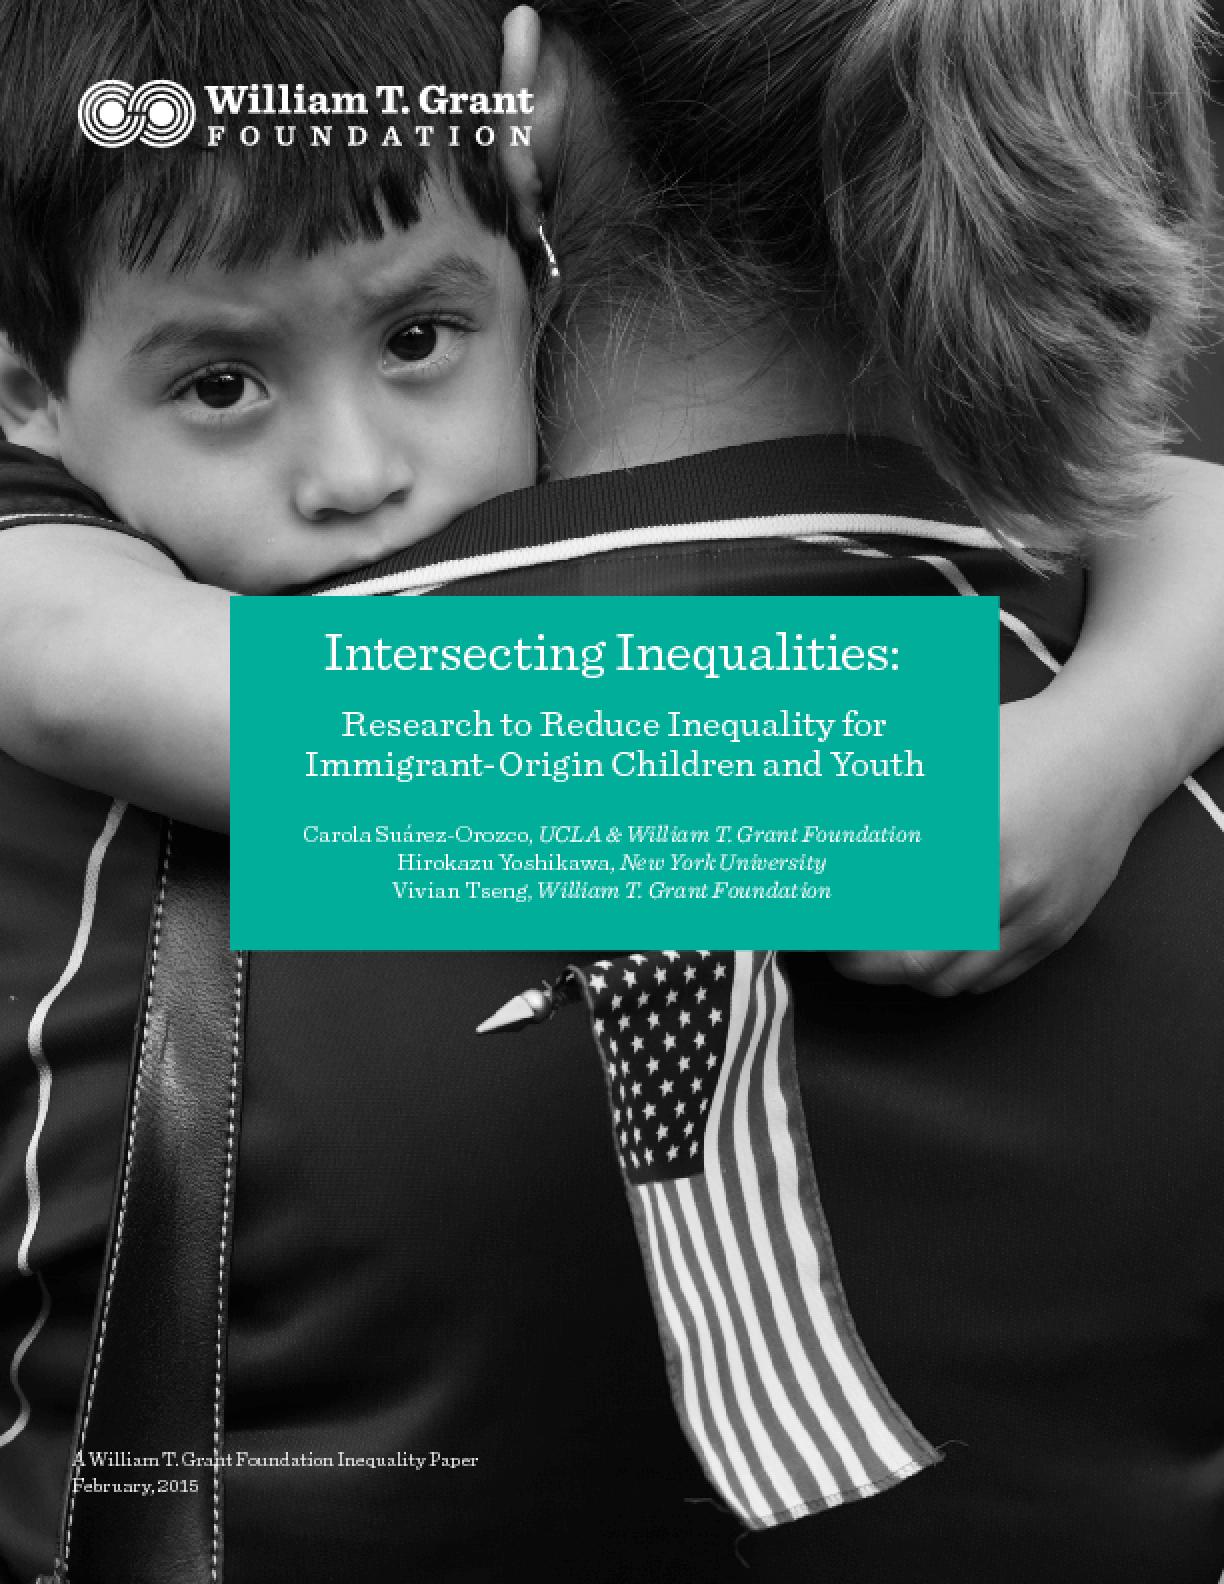 Intersecting Inequalities: Research to Reduce Inequality for Immigrant-Origin Children and Youth